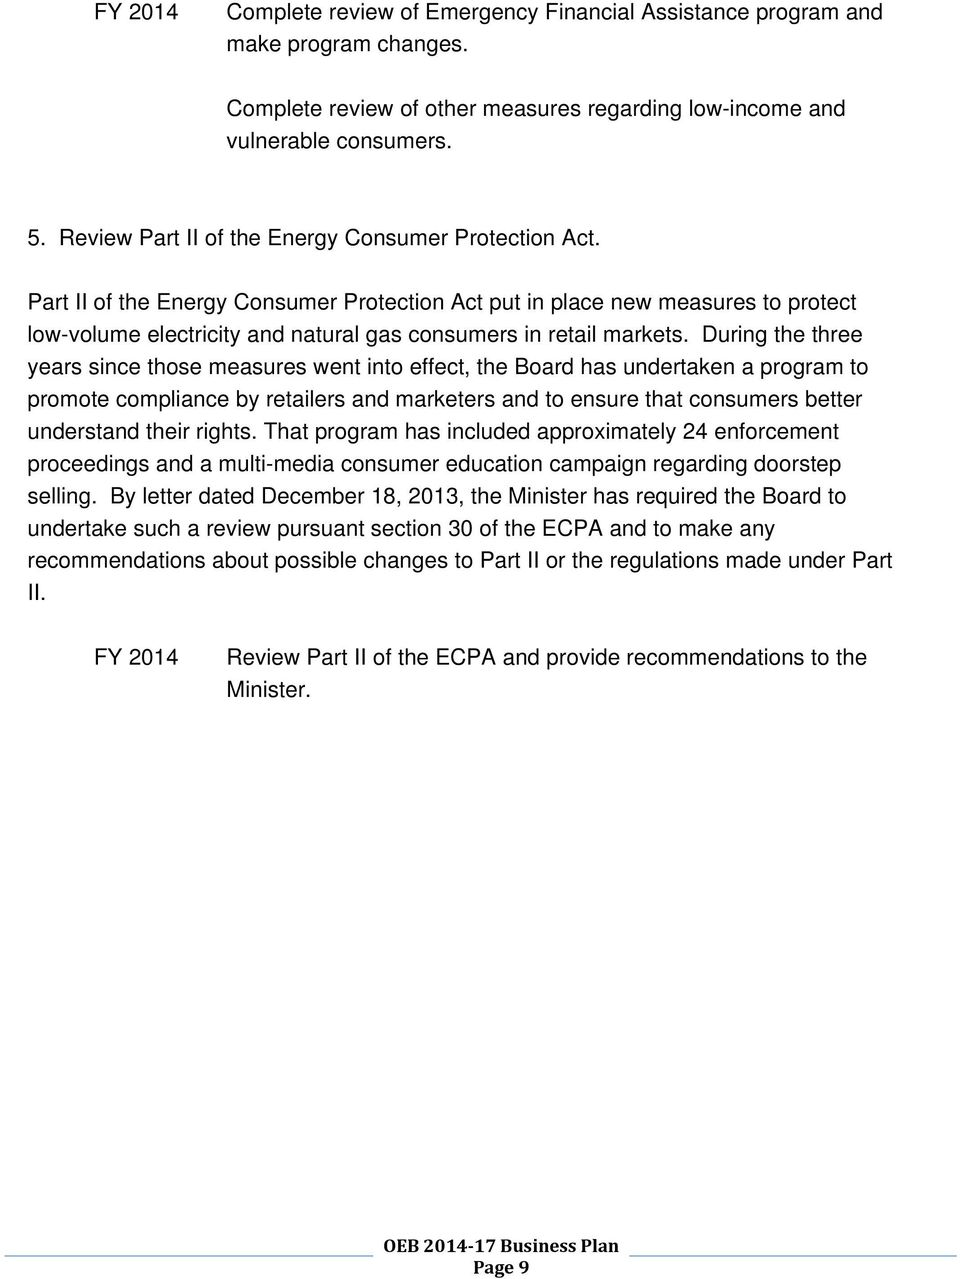 Part II of the Energy Consumer Protection Act put in place new measures to protect low-volume electricity and natural gas consumers in retail markets.